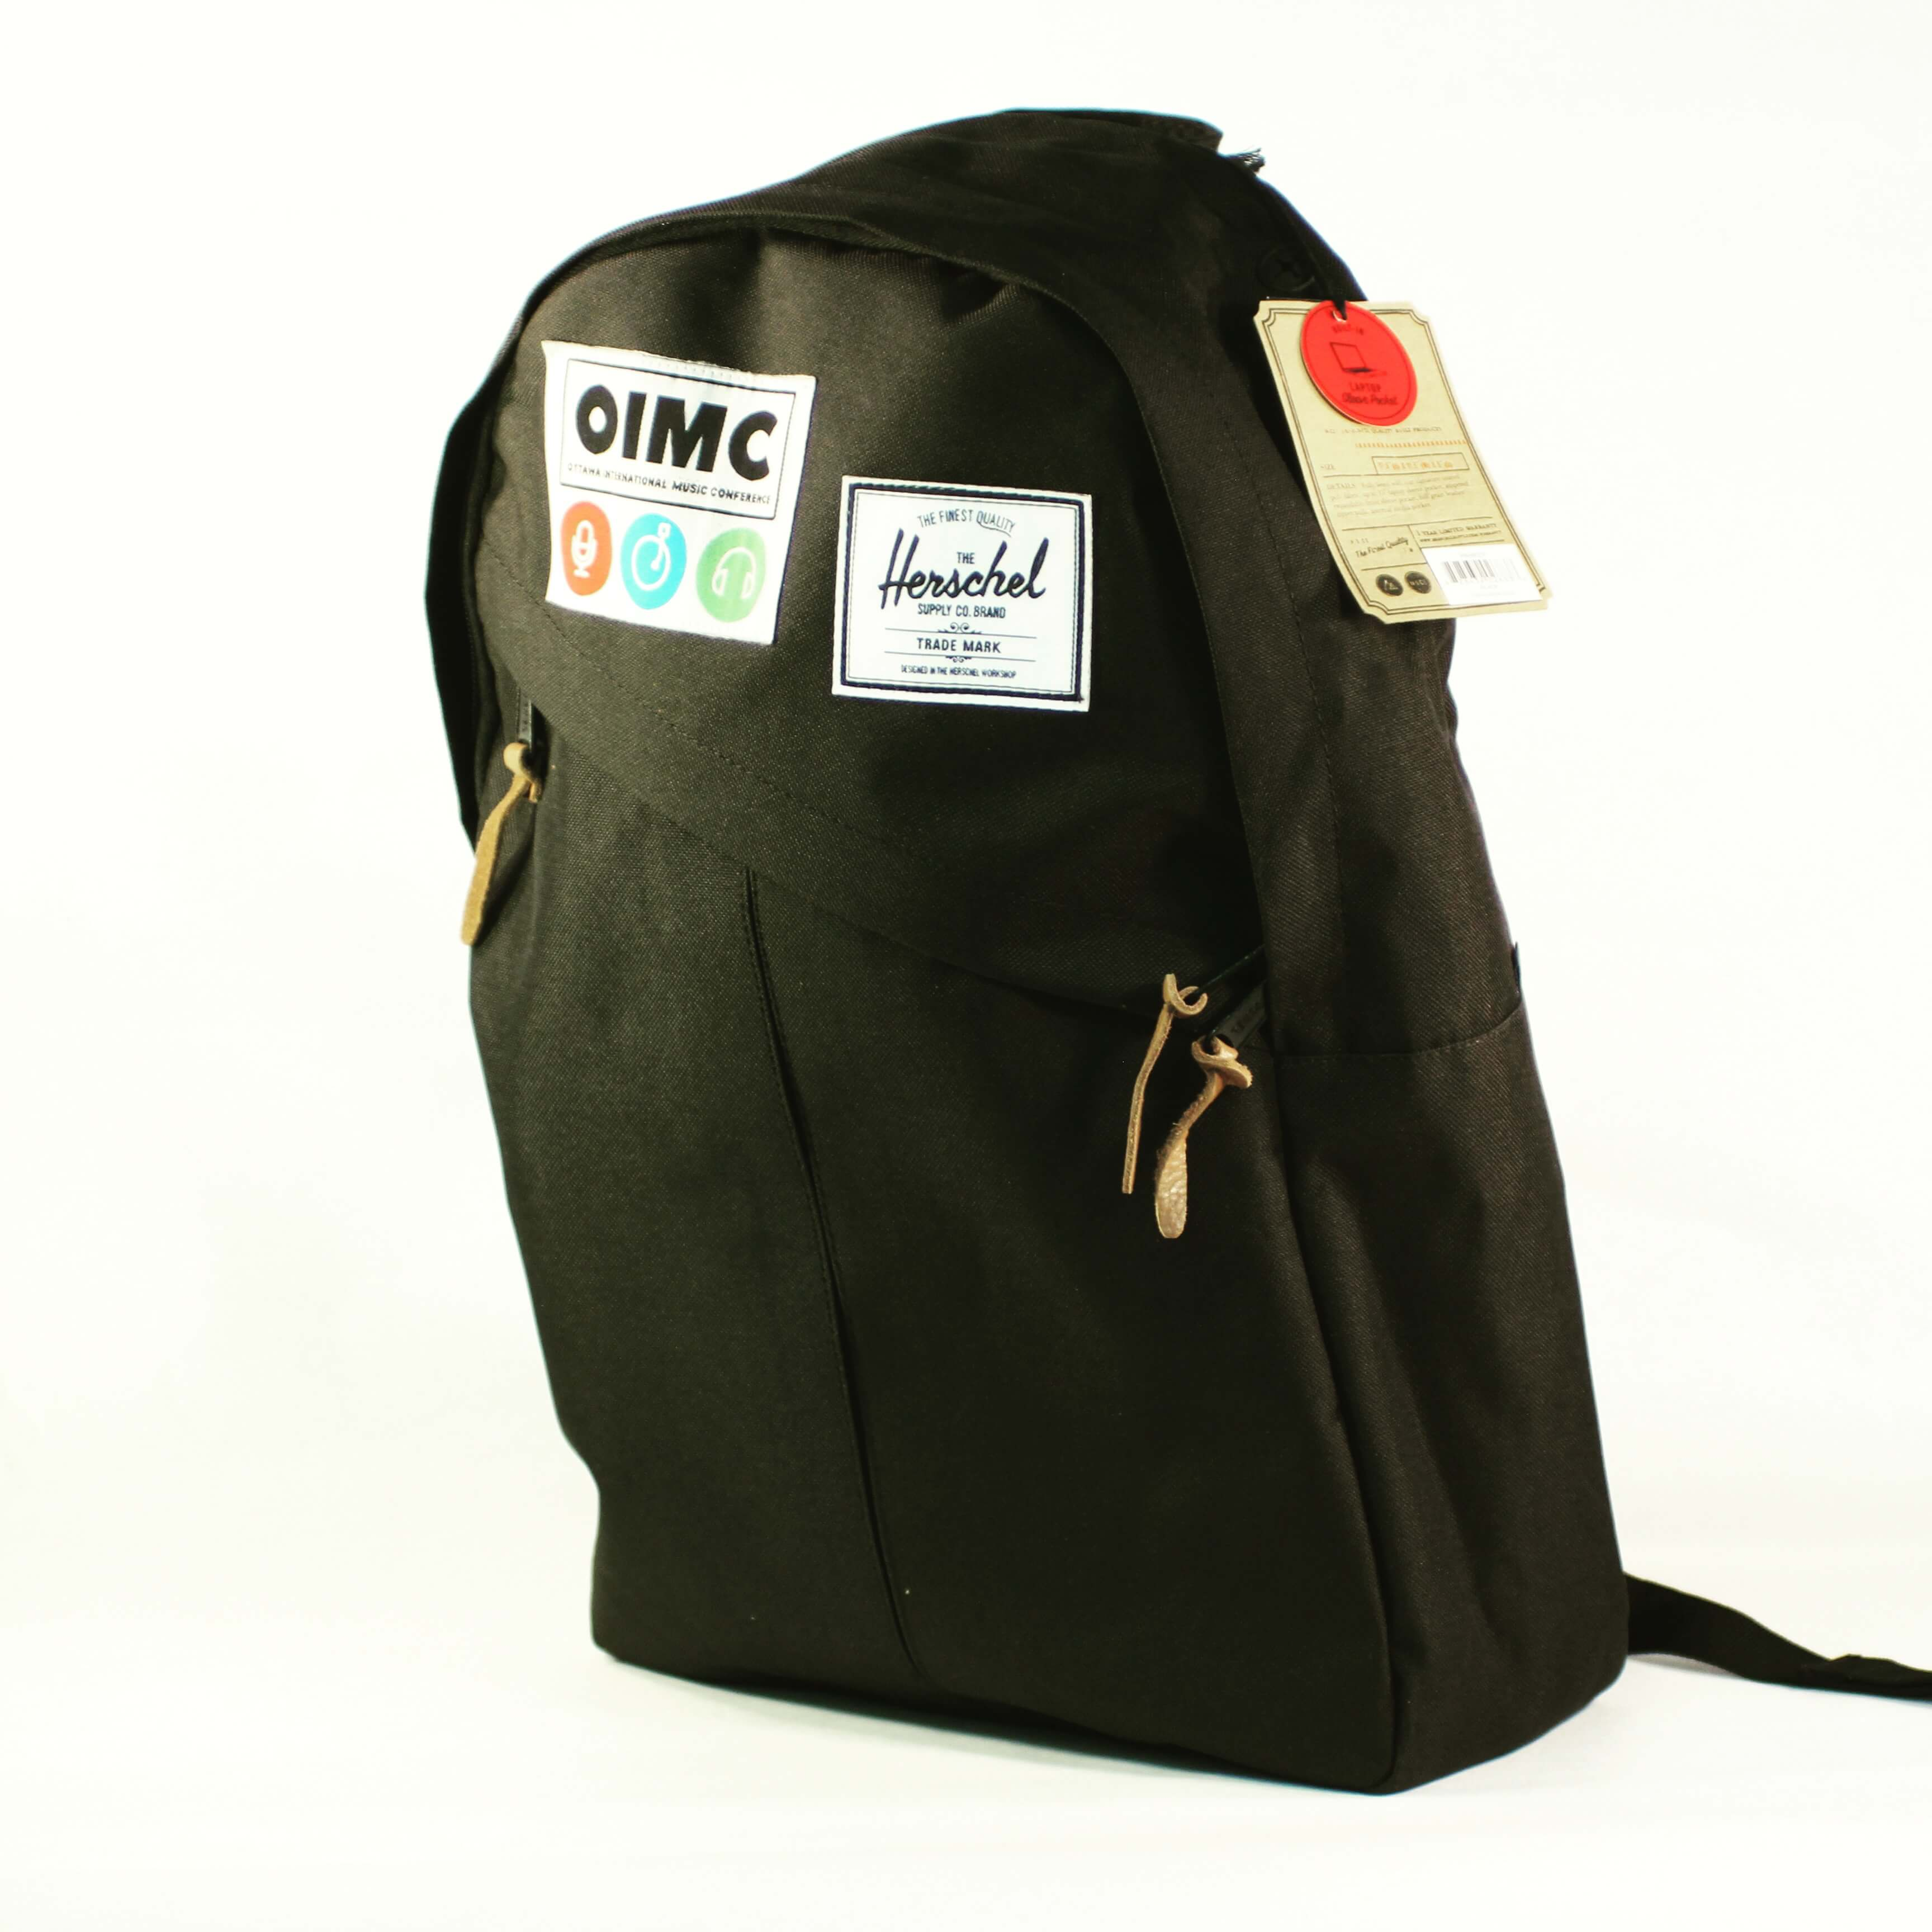 Custom Herschel Back Pack. Custom embroidered Herschel nap sack. All Things Made. Ottawa, Ontario, Canada. Promotional products swag merchandise. OIMC. Ottawa International Music Conference.